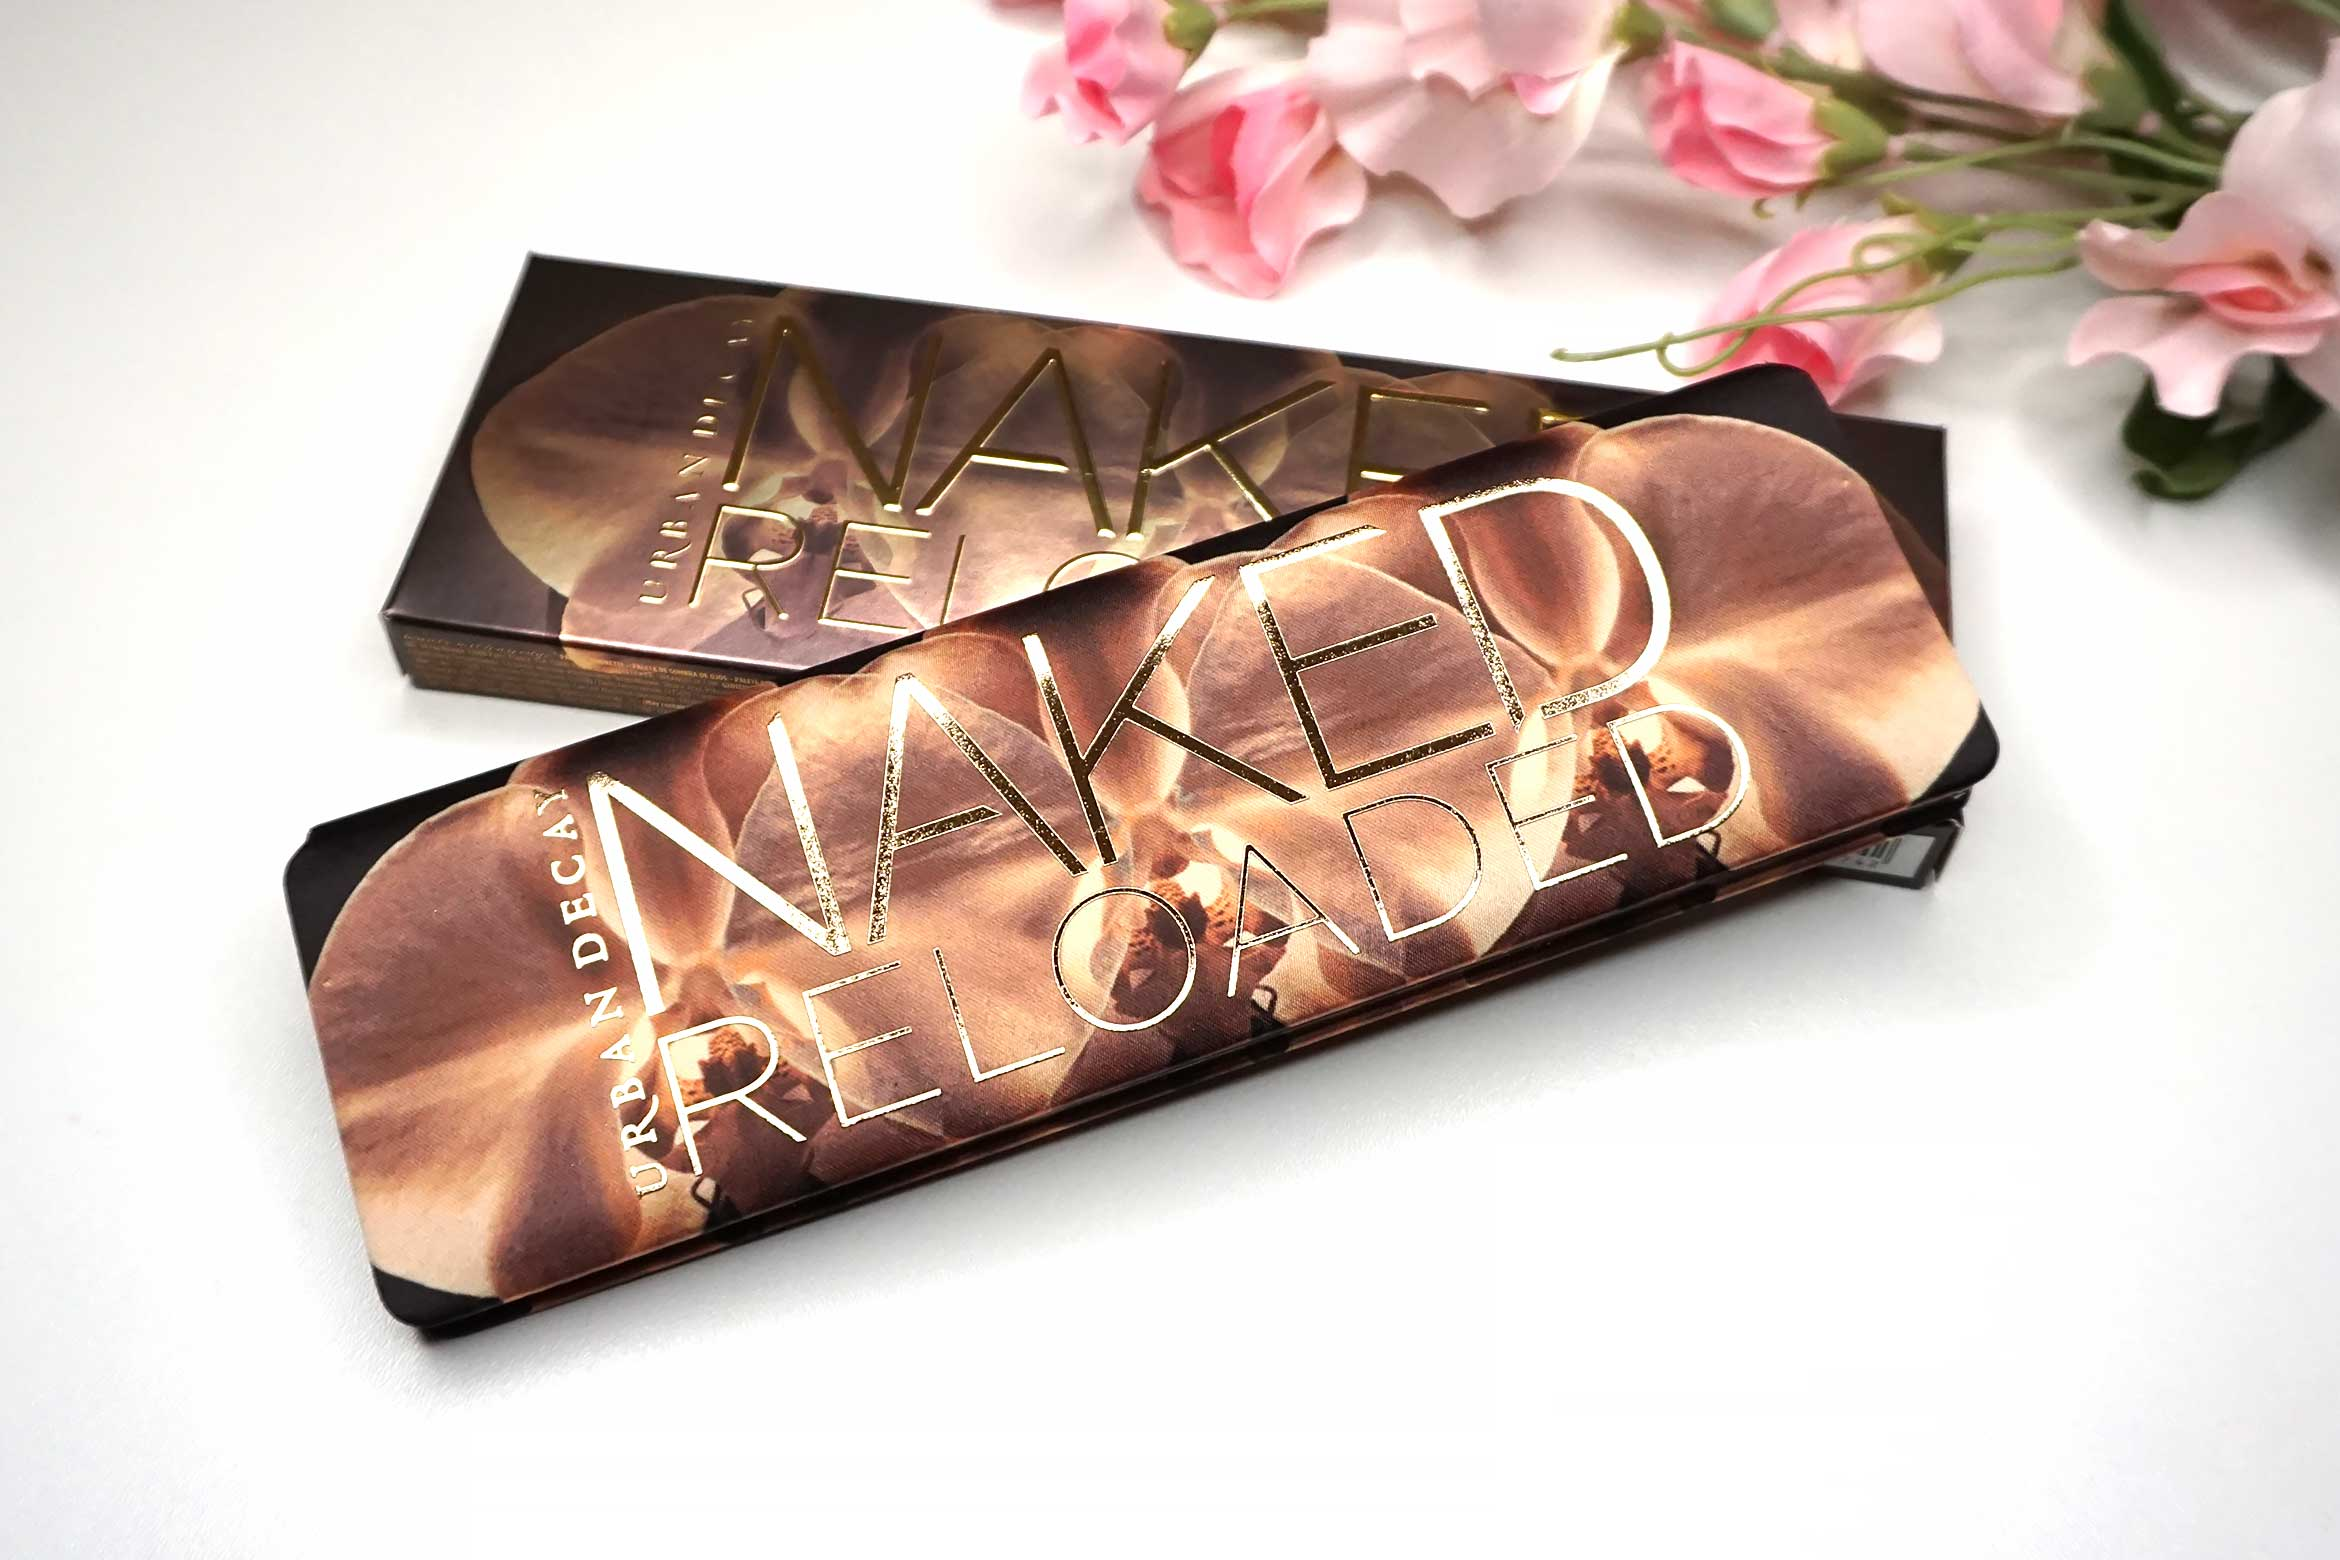 Urban-Decay-Naked-Reloaded-review-2